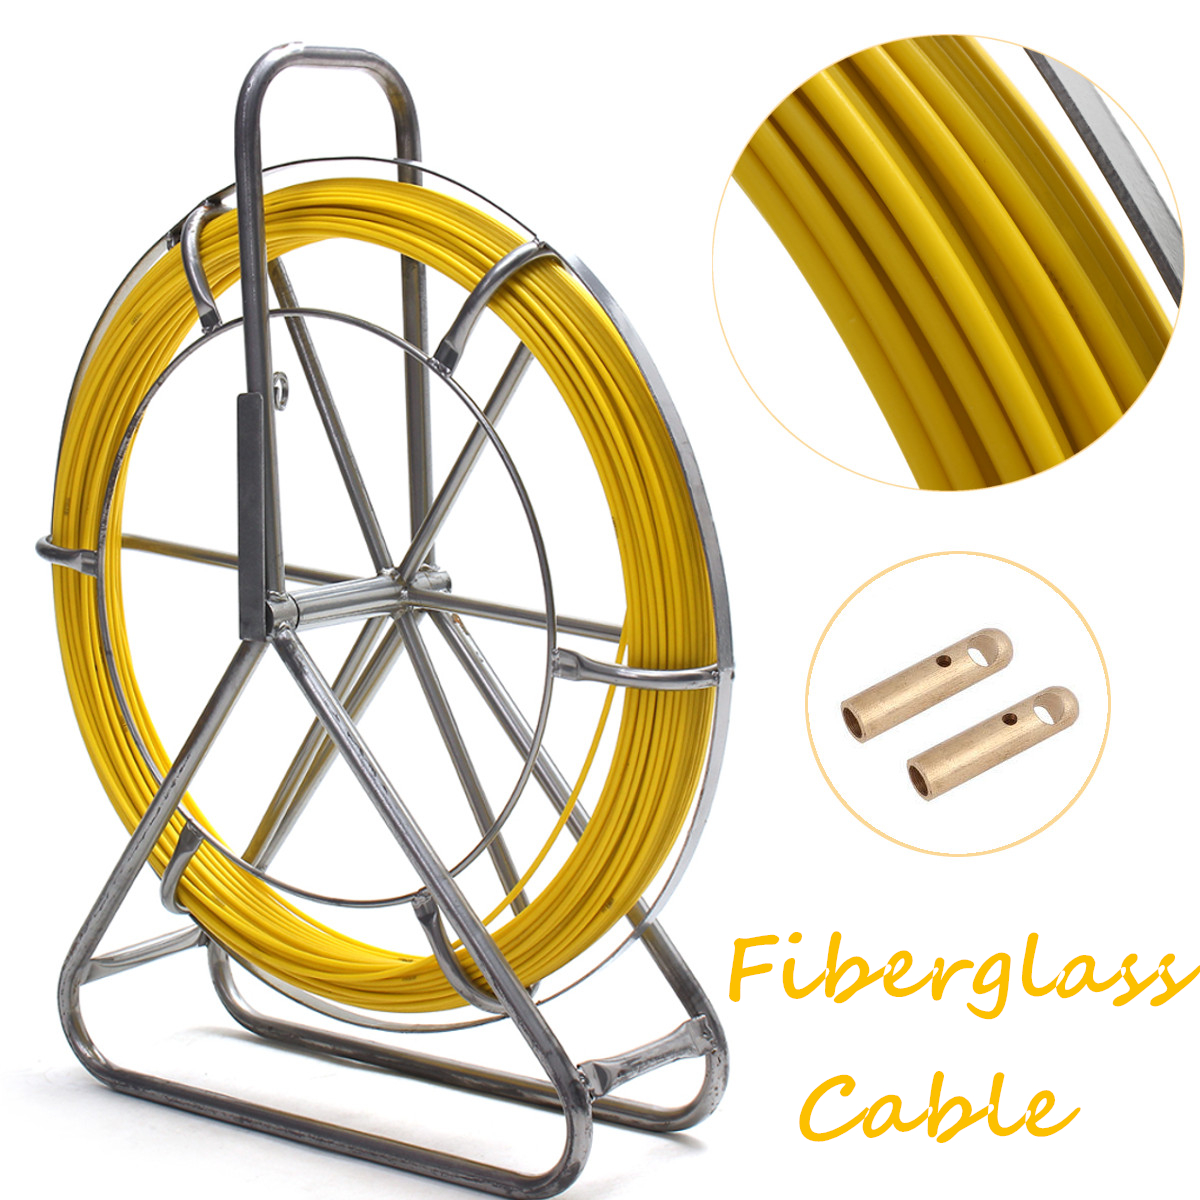 6mm 150m Fish Tape Fiberglass Wire Cable Running Rod Duct...